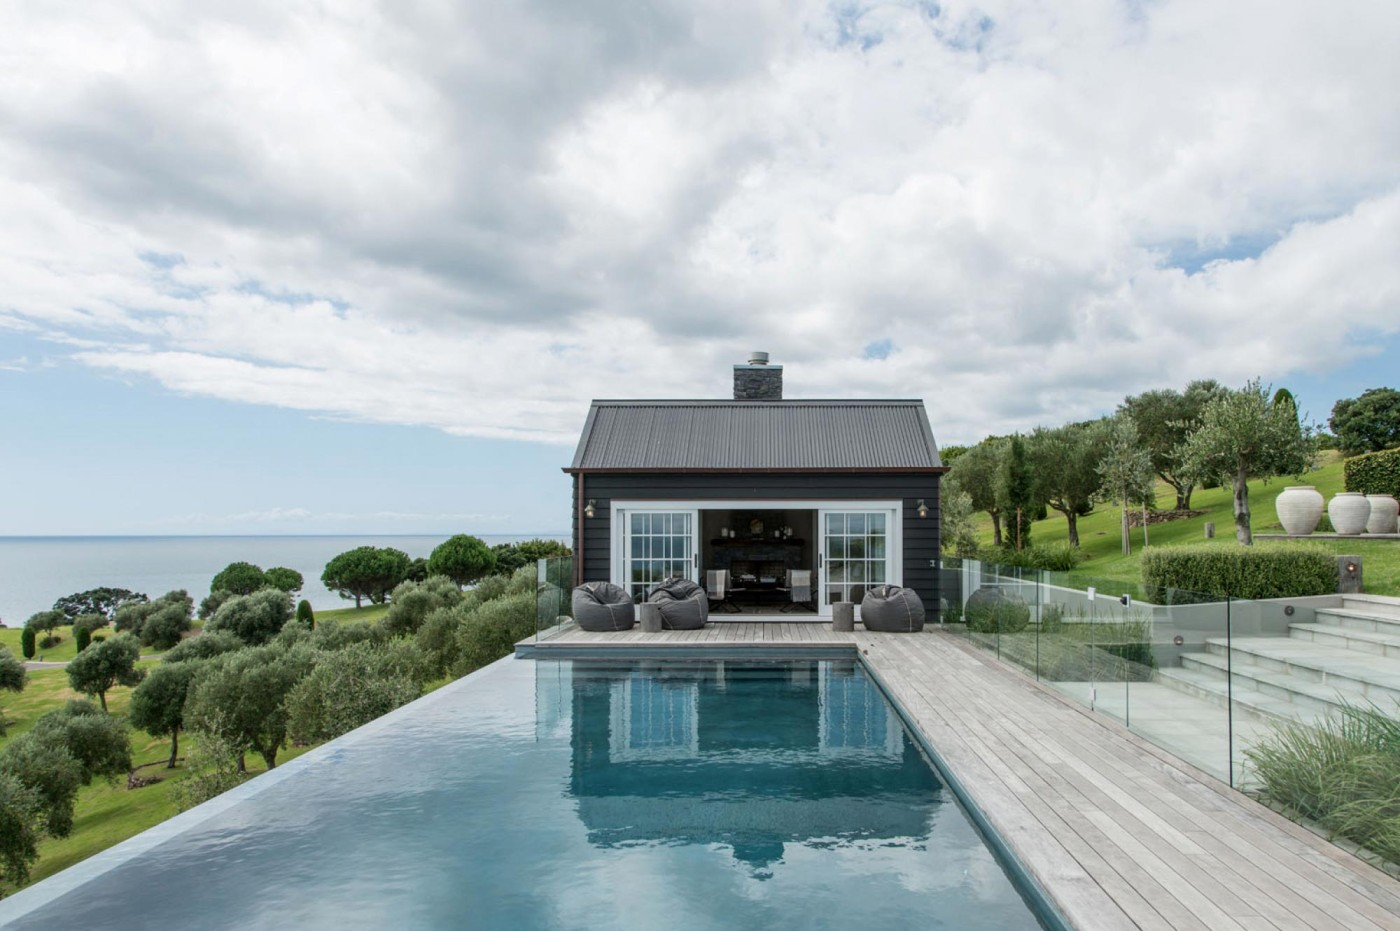 Barn house sumich chaplin architects for Swimming pool design new zealand